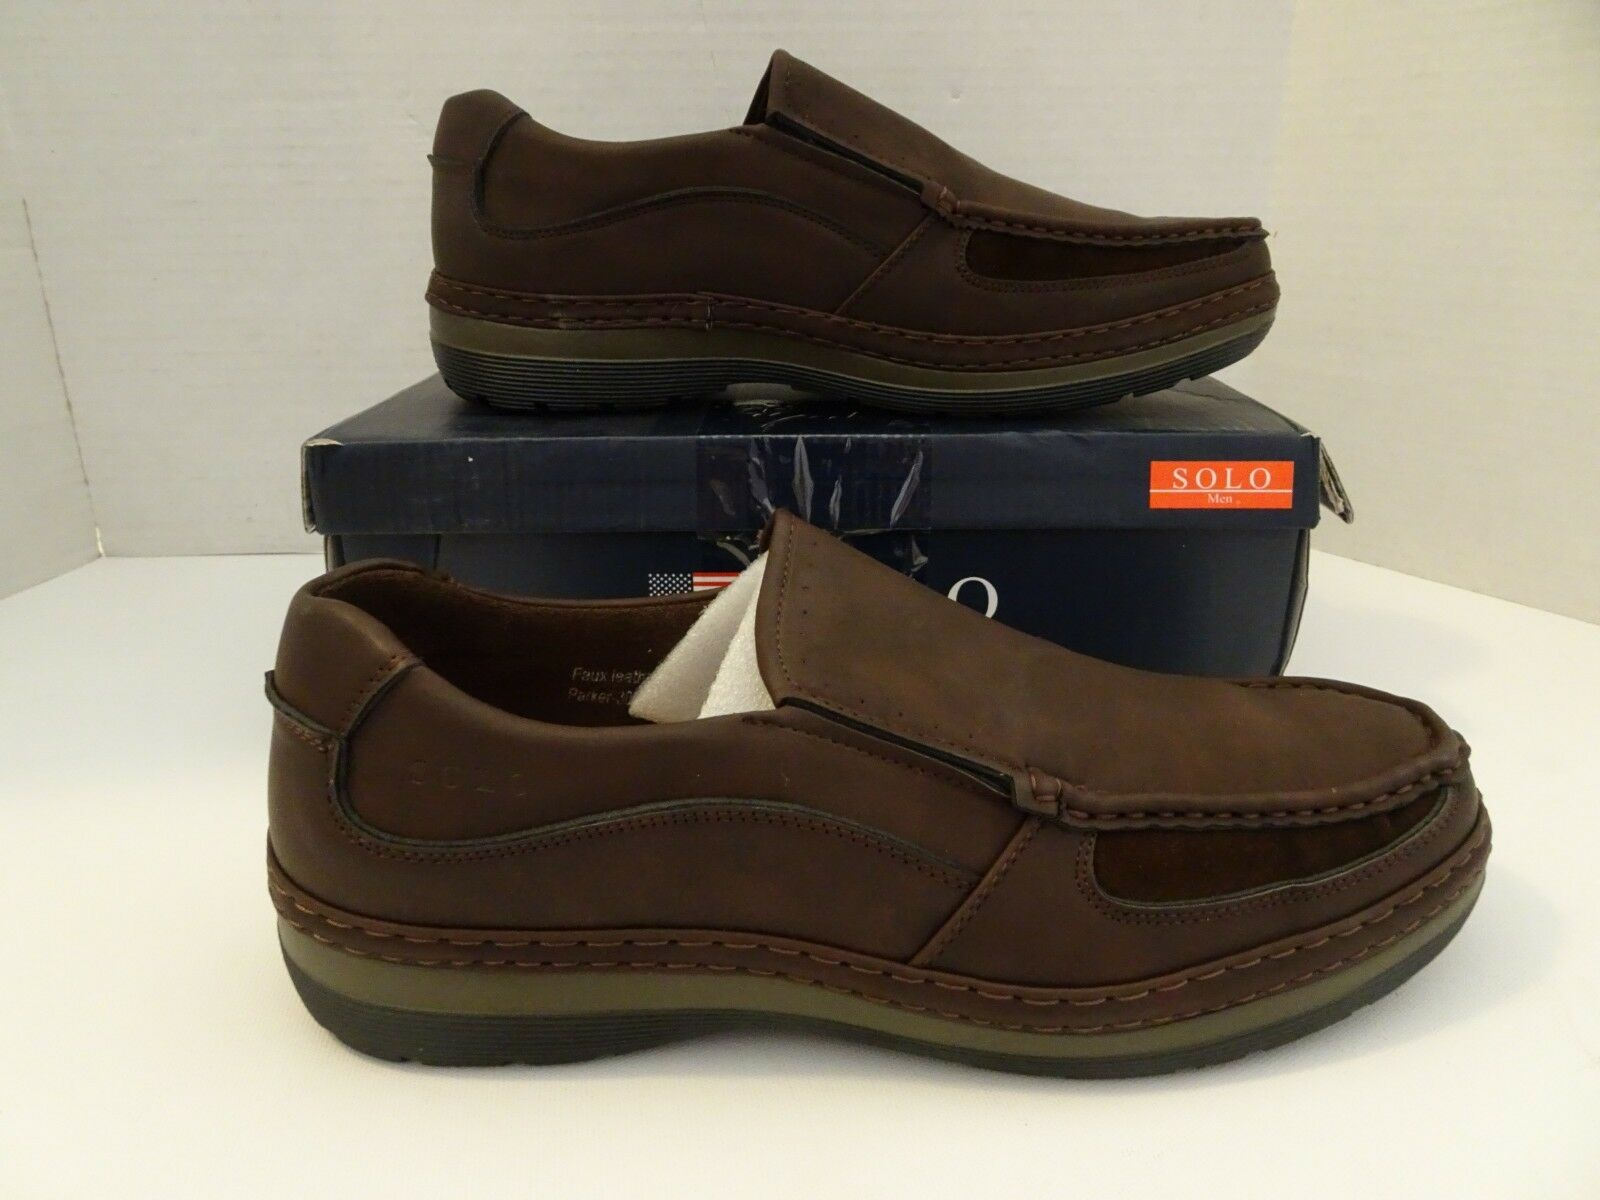 SOLO  Men's  Size 12 Brown Loafers  Slip On shoes Parker-300